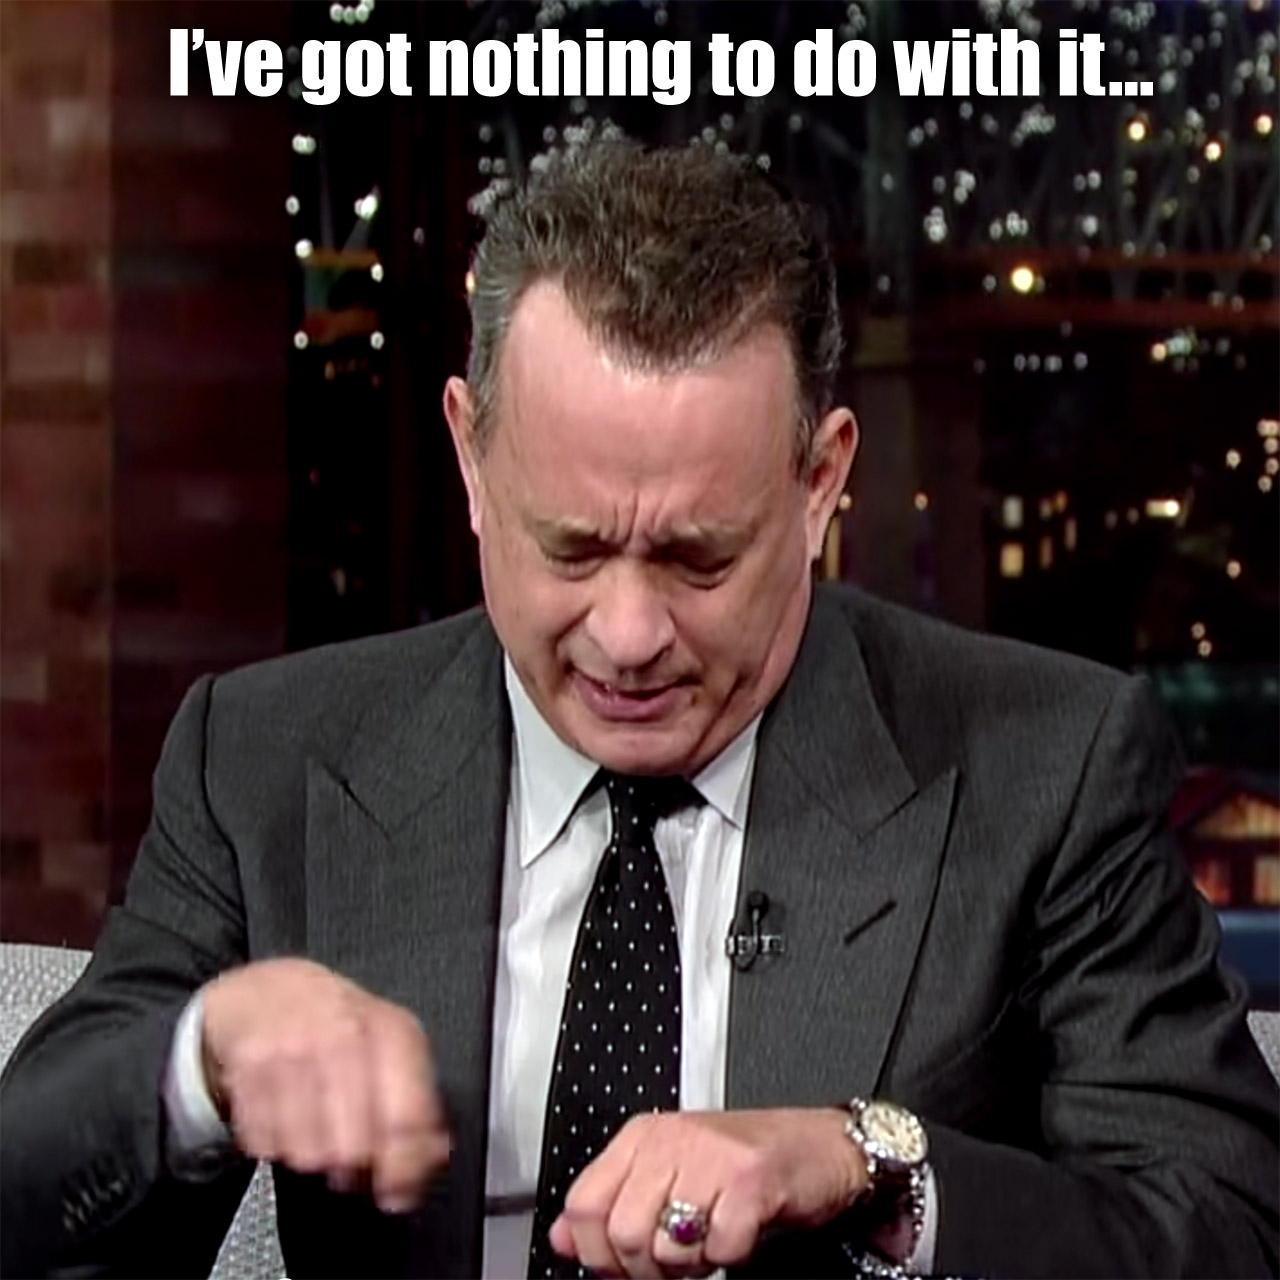 Tom-Hanks impersonates Bill Belichick for David Letterman